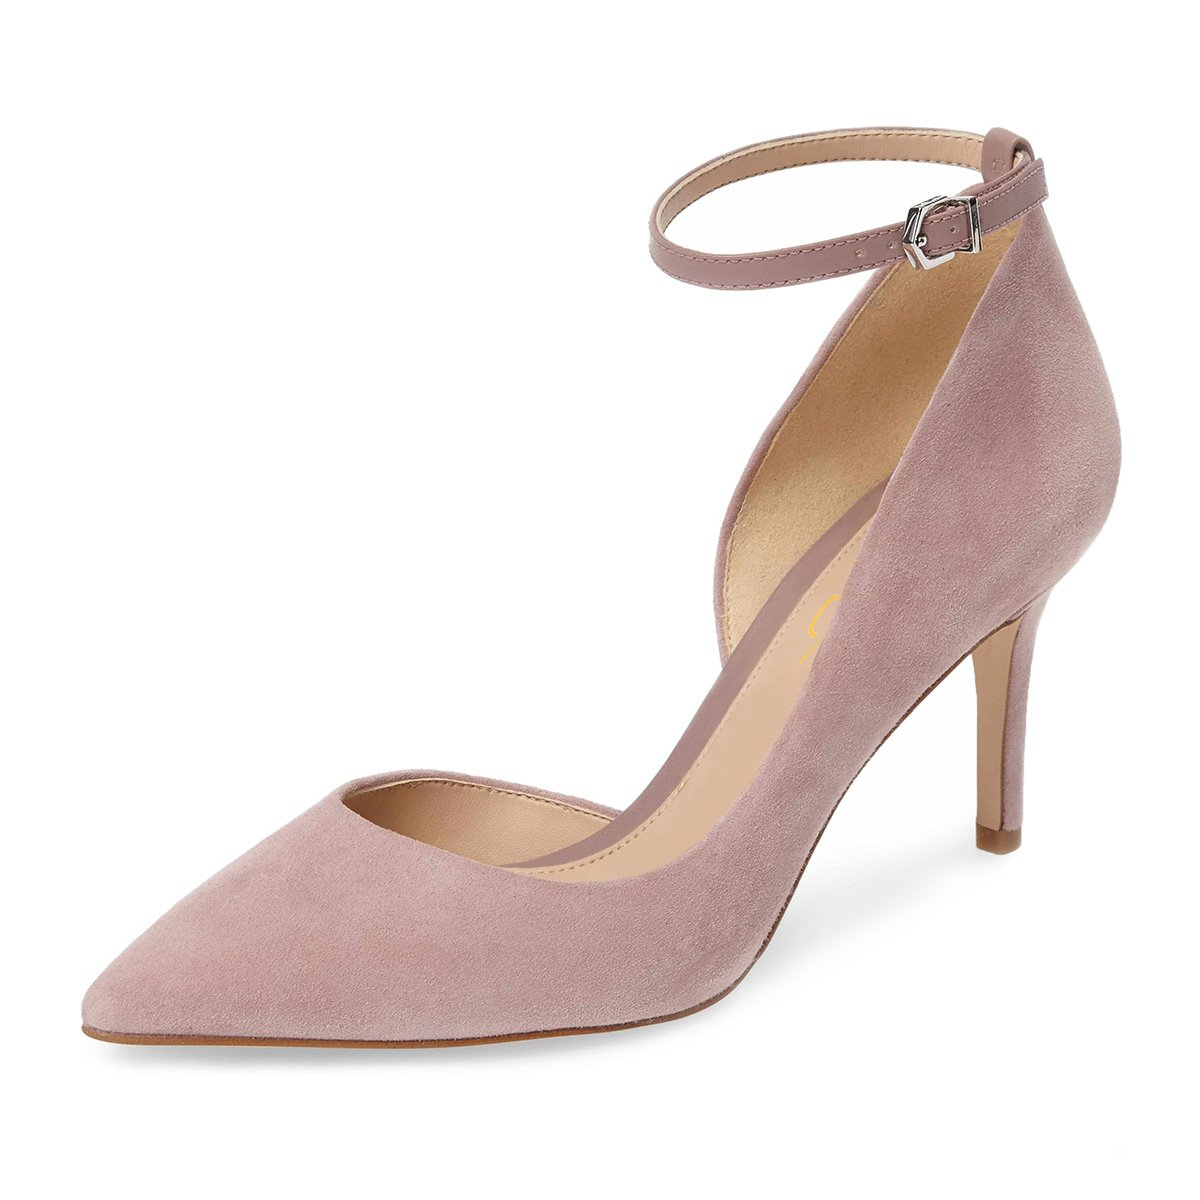 XYD Women Pointed Toe D'Orsay Mid Heel Pumps Ankle Strap Buckled Wedding Party Dress Shoes B078XQ16PT 14 B(M) US|Pink